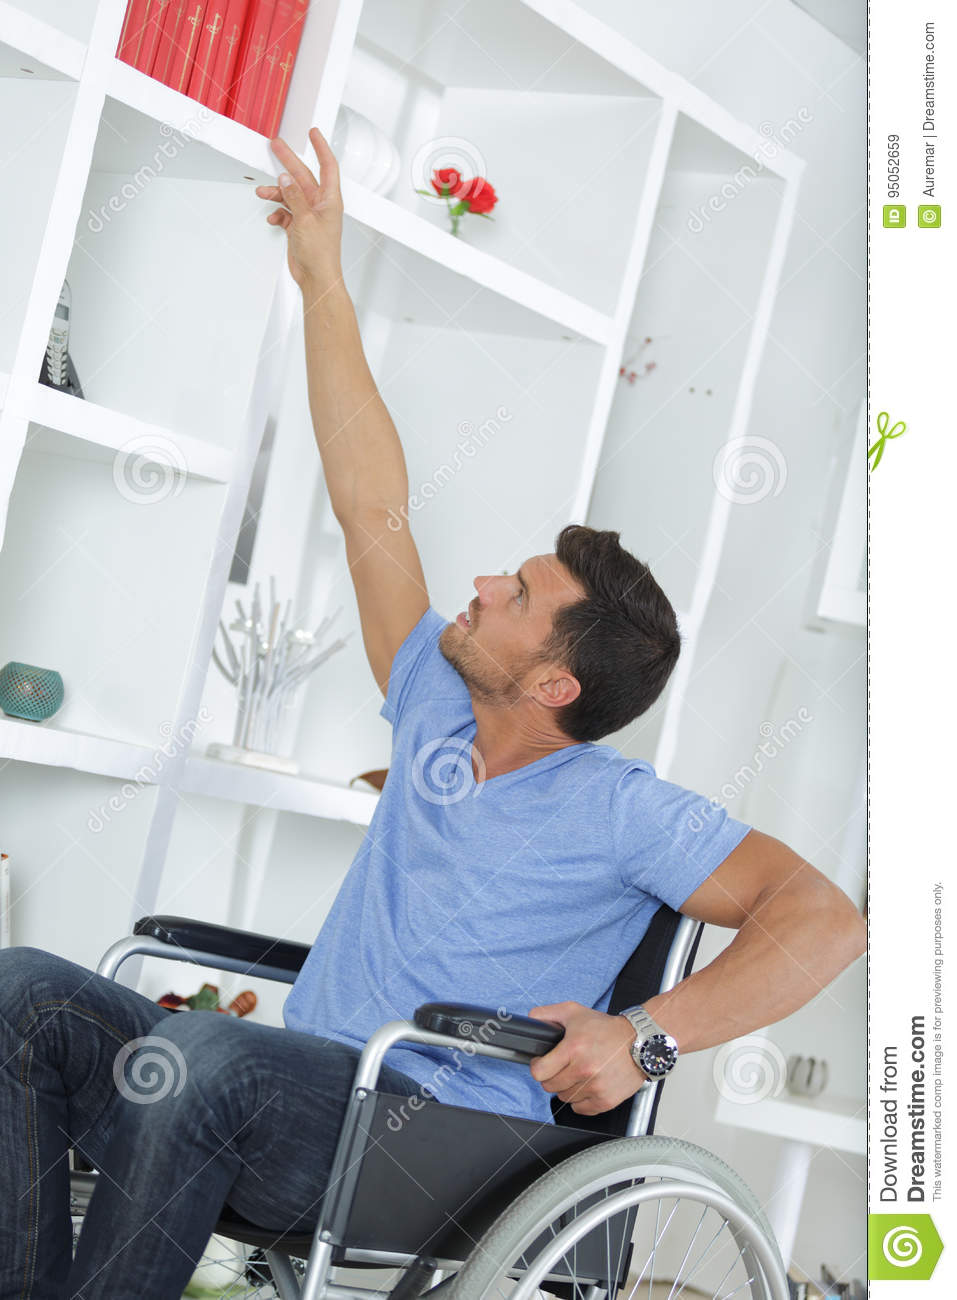 Man On Wheelchair Reaching For Book Stock Image  Image